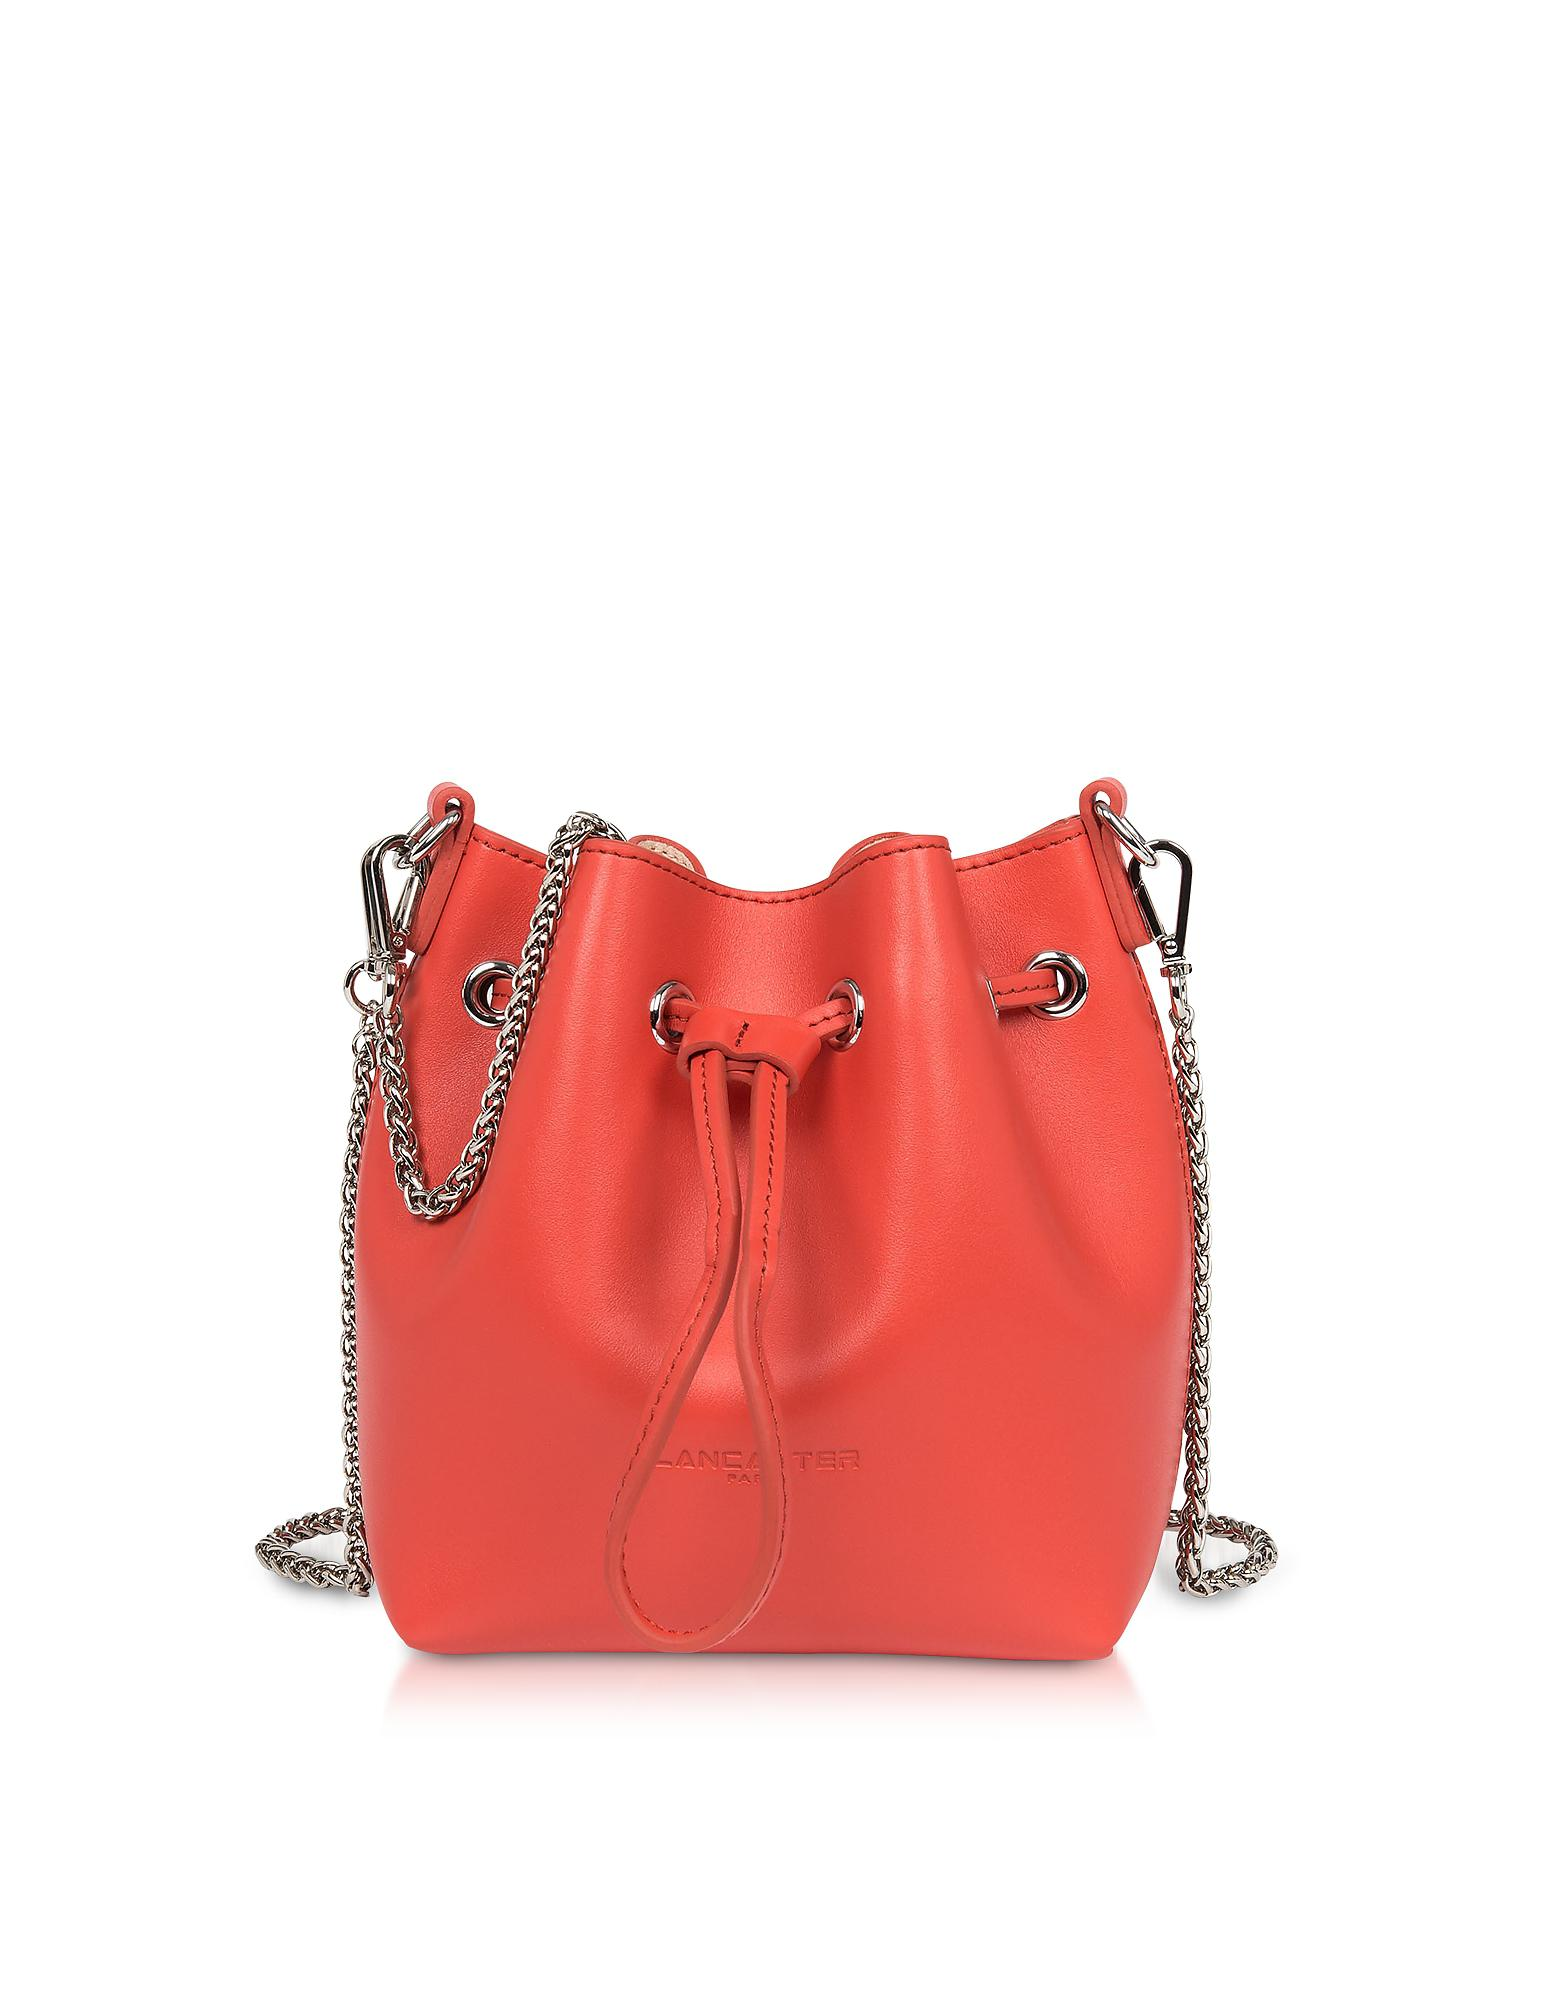 72cffc6b829688 Lyst - Lancaster Paris Treasure And Annae Leather Mini Bucket Bag in Red